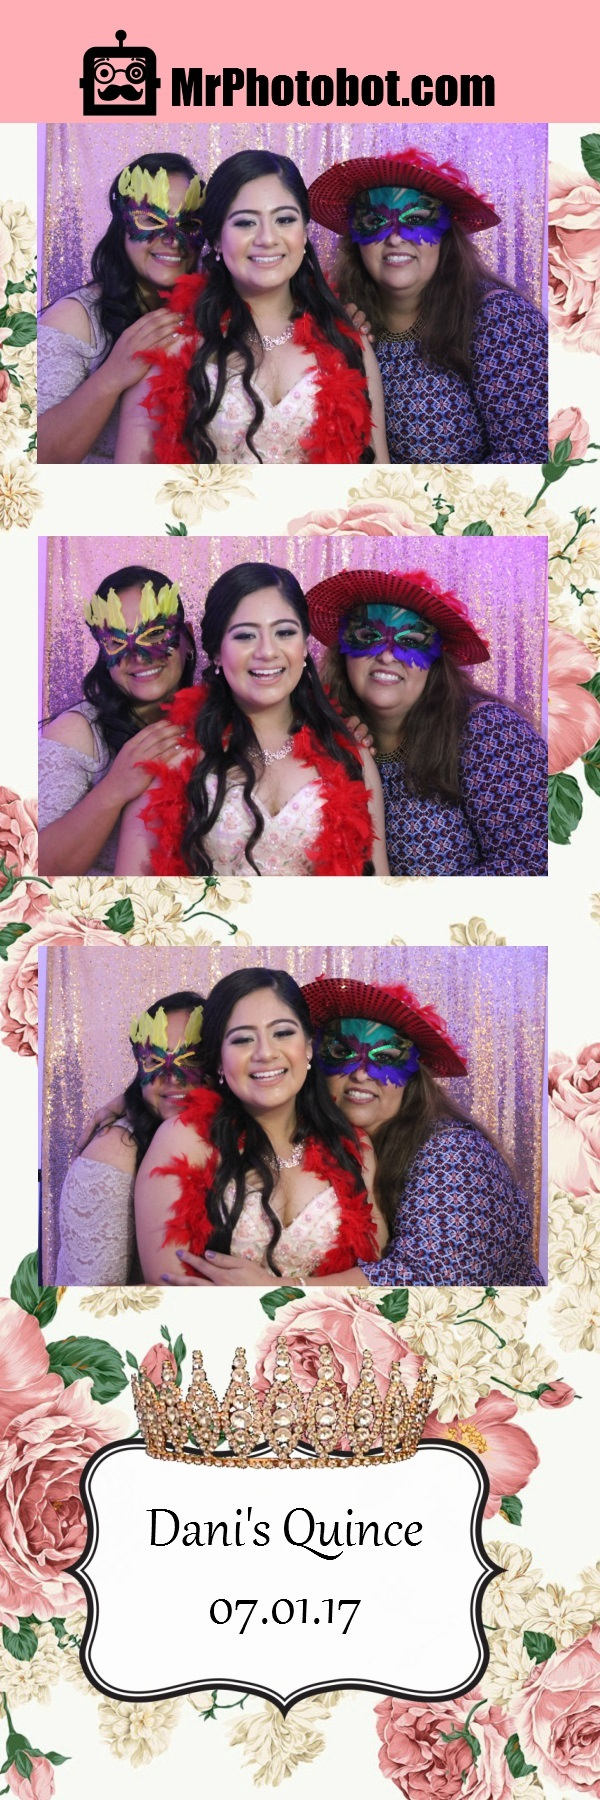 mrphotobot_quinceanera_floral_photostrip_mini.jpg